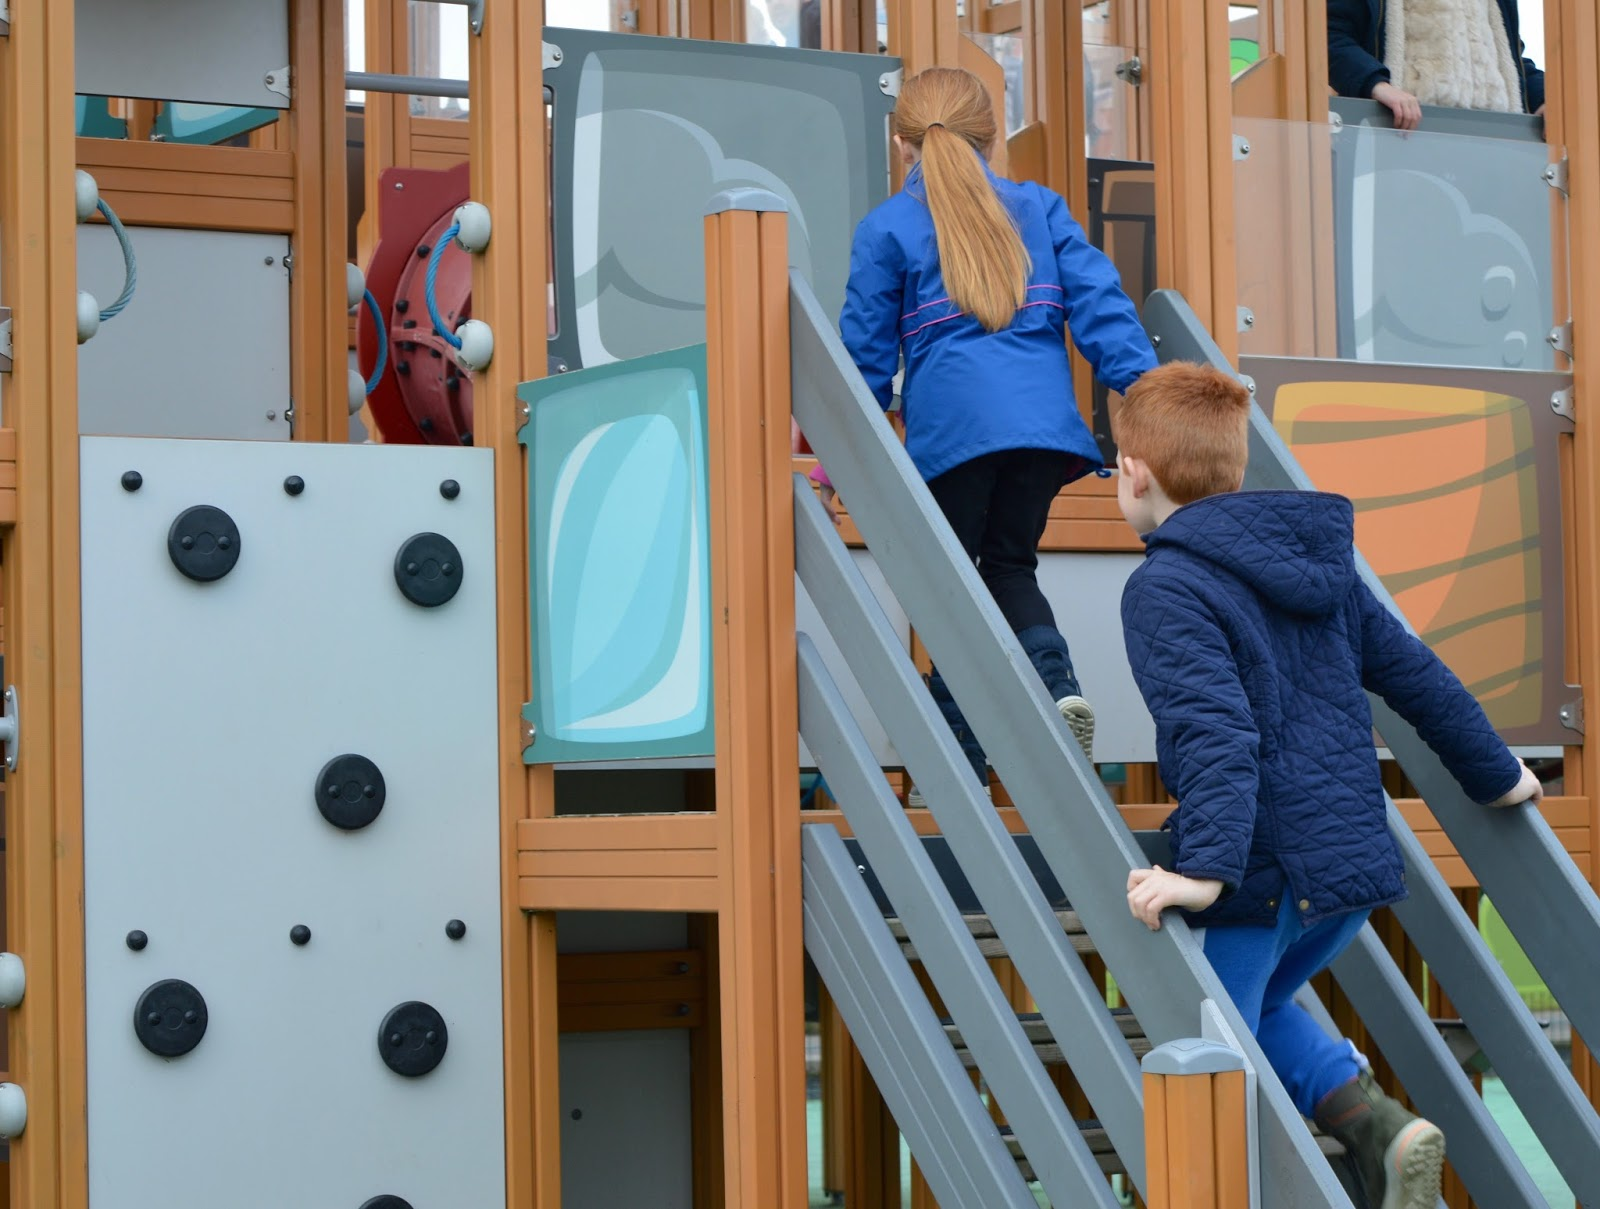 Visiting Angry Birds Activity Park at Lightwater Valley, North Yorkshire - climbing frame